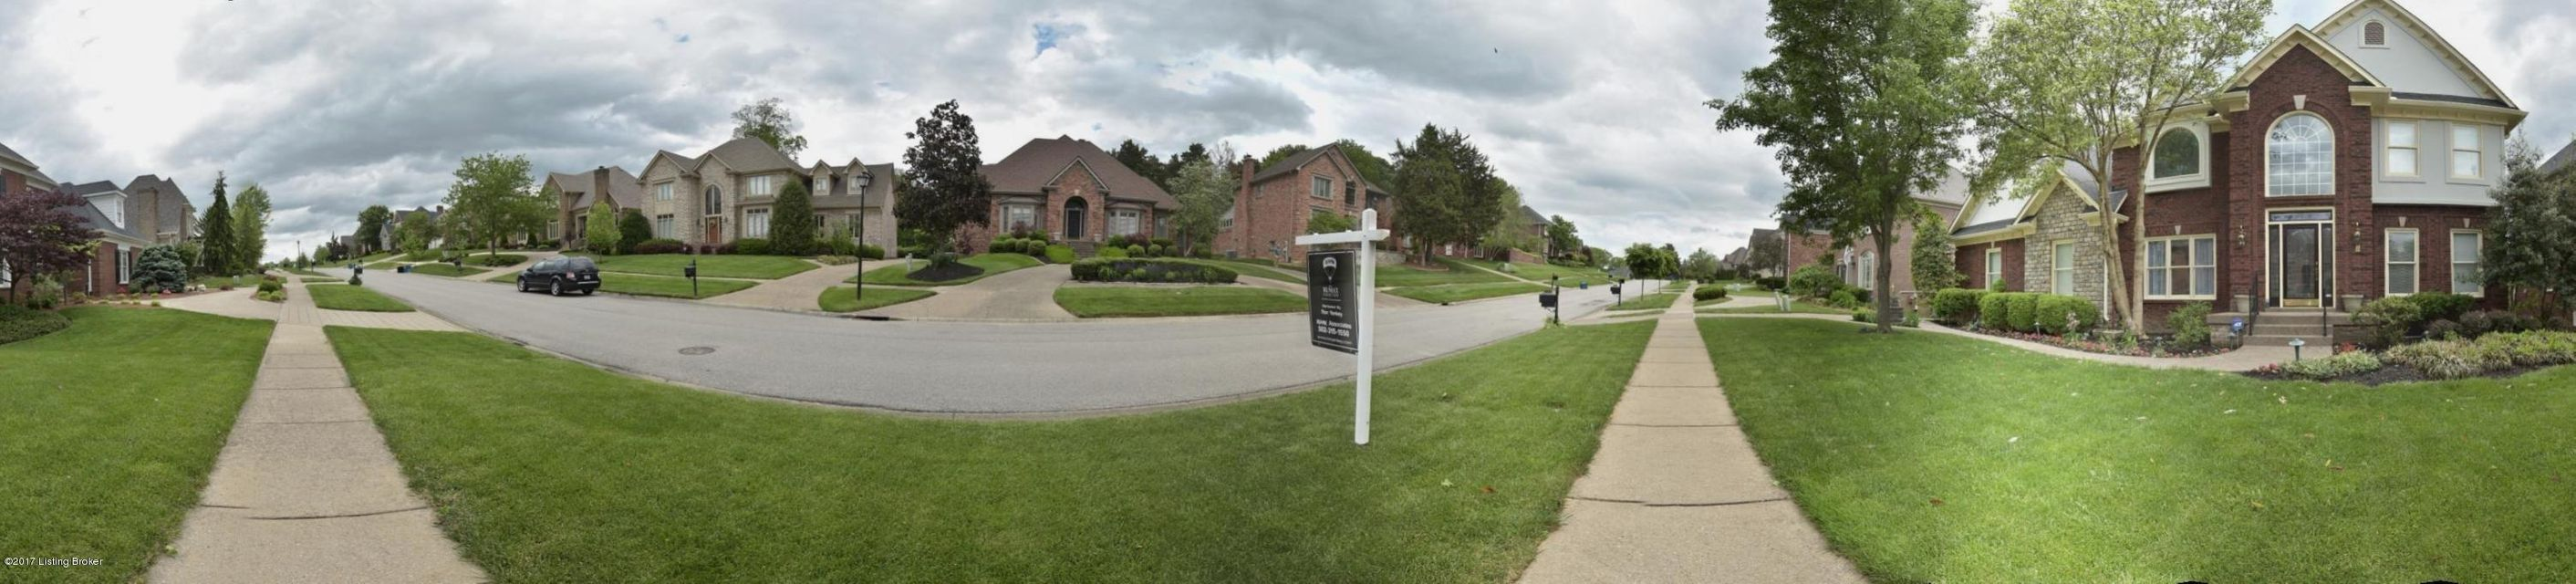 Additional photo for property listing at 14800 Forest Oaks Drive  Louisville, Kentucky 40245 United States